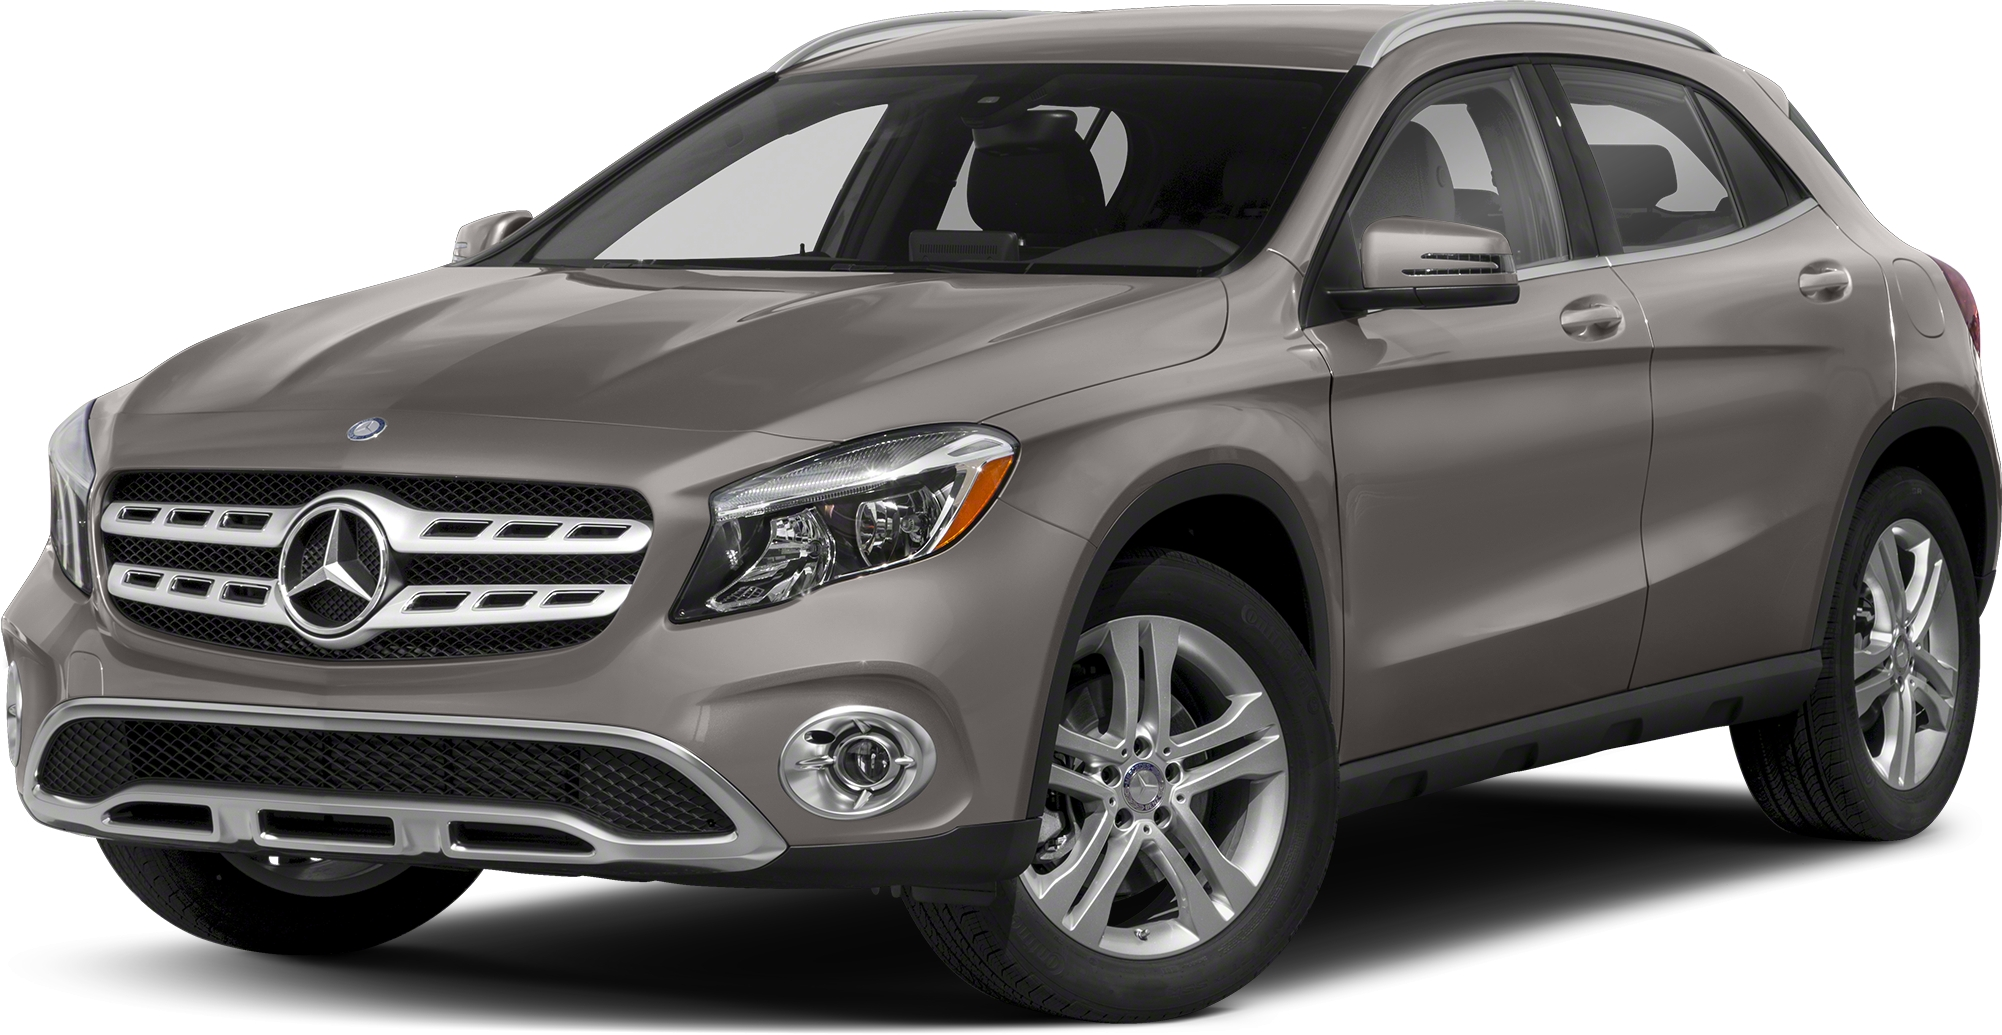 2018 mercedes benz gla 250 4matic suv 22594042 for sale price purchase lease near me. Black Bedroom Furniture Sets. Home Design Ideas